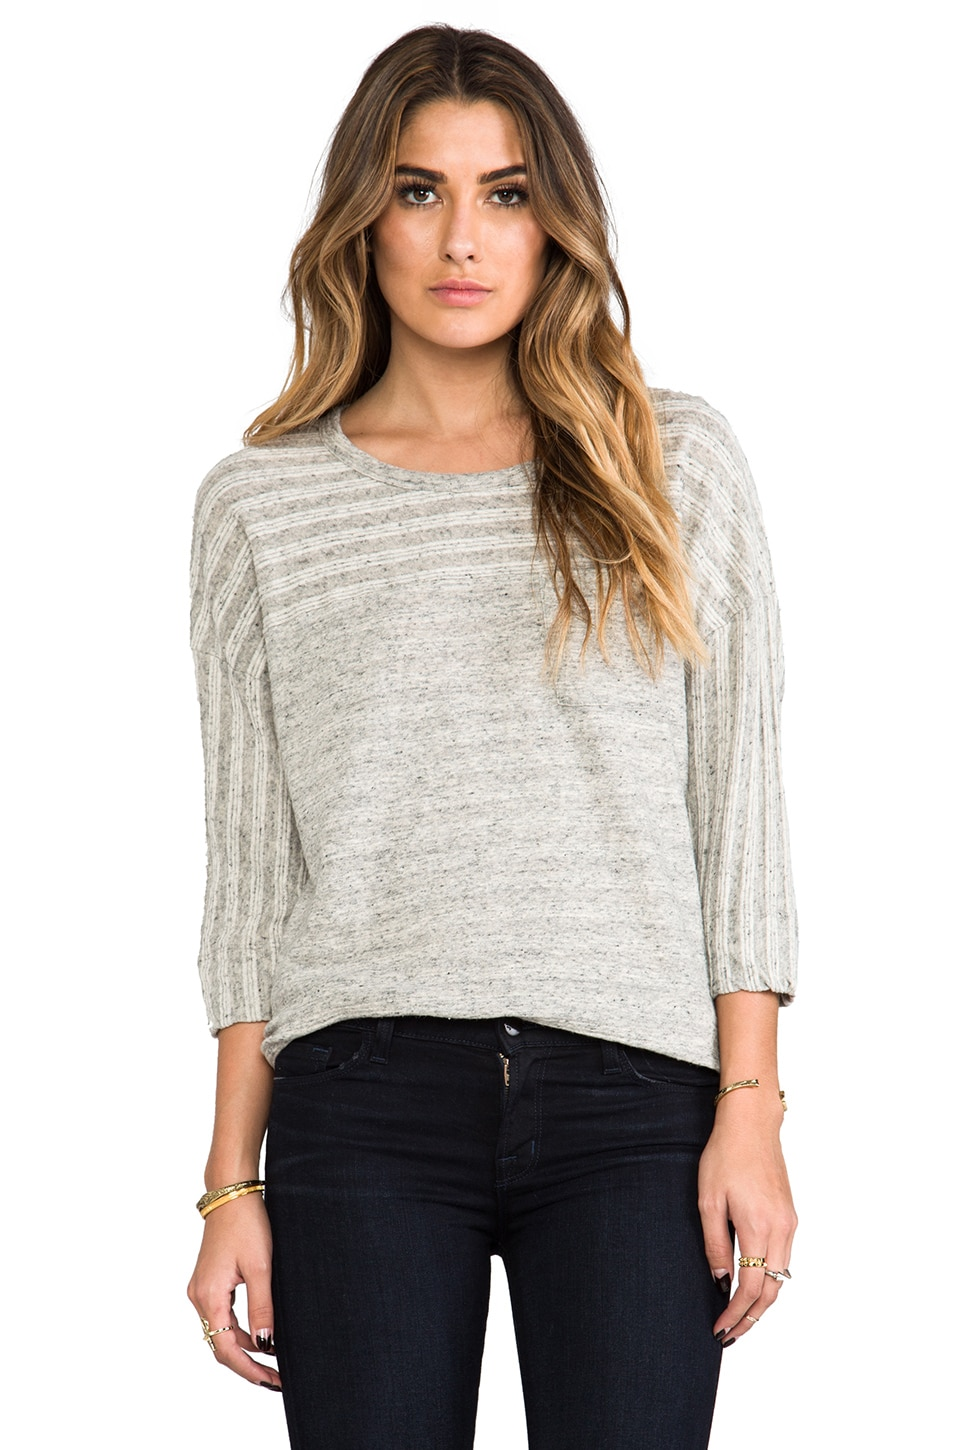 James Perse Colorblocked Breton Sweat Top in Heather Grey